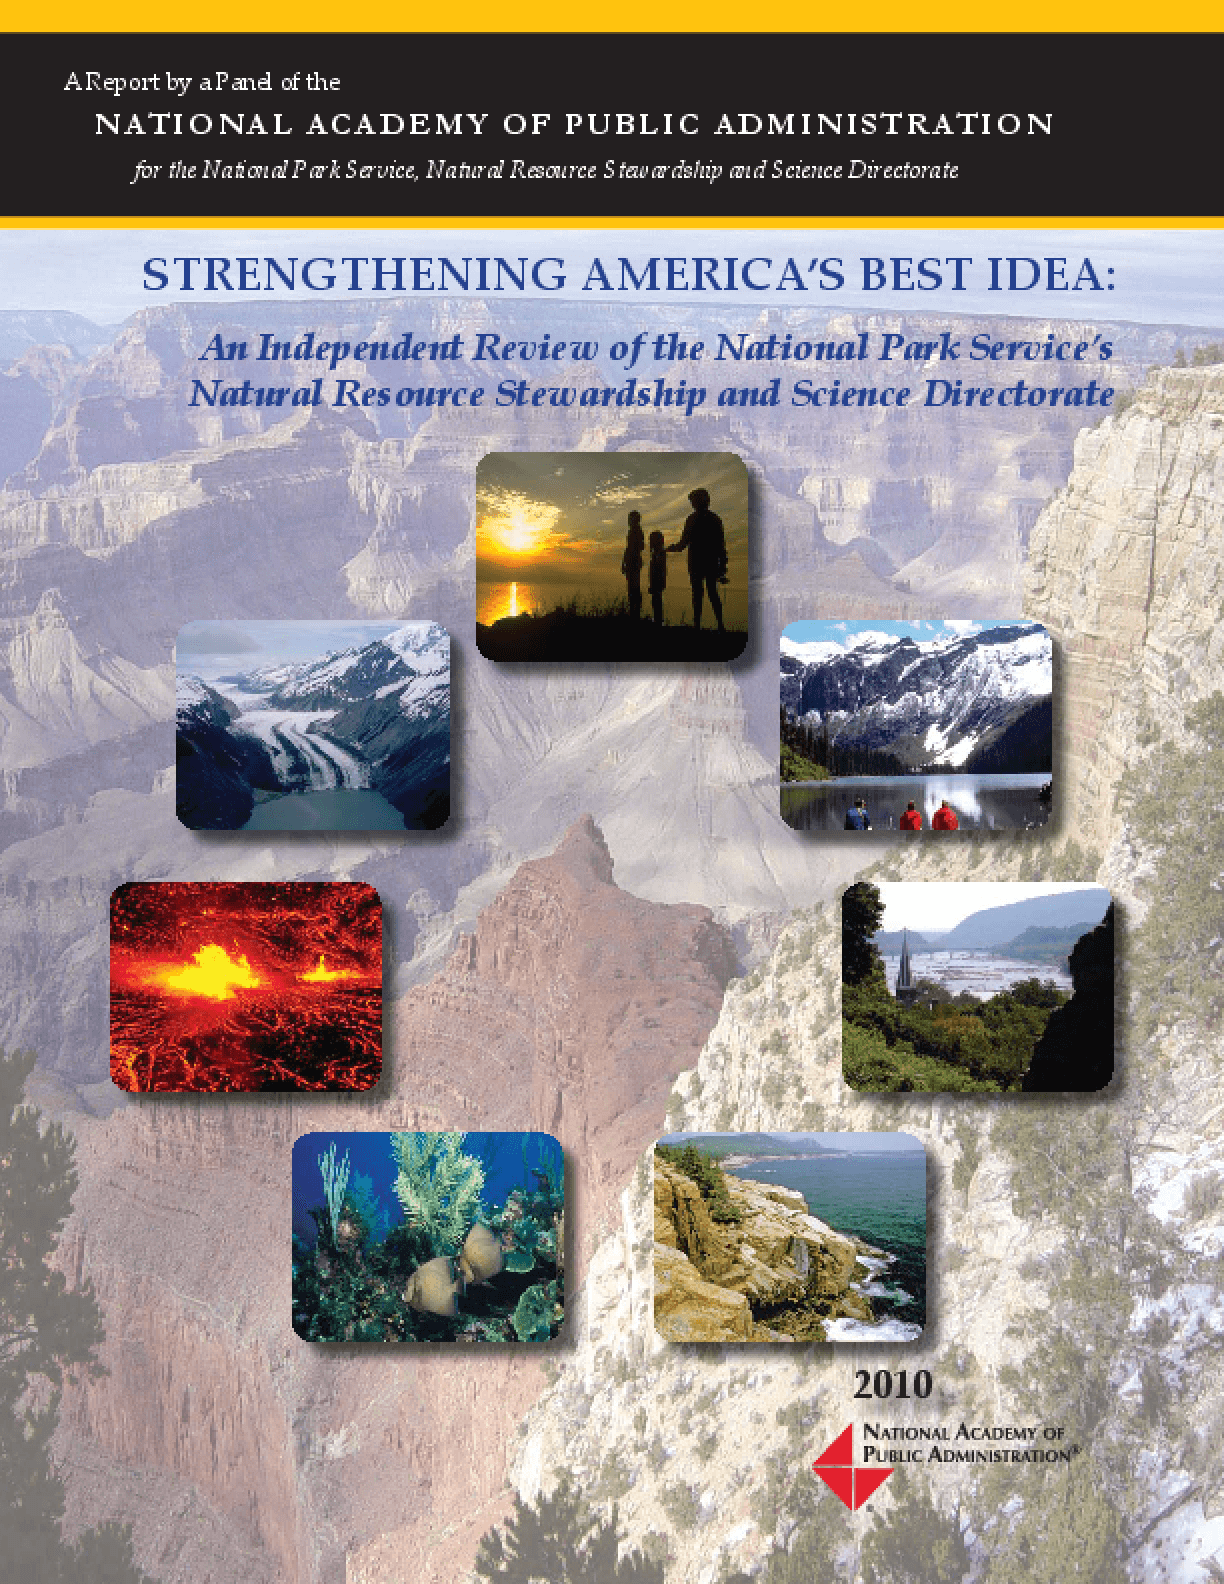 Strengthening America's Best Idea: An Independent Review of the National Park Service's Natural Resource Stewardship and Science Directorate